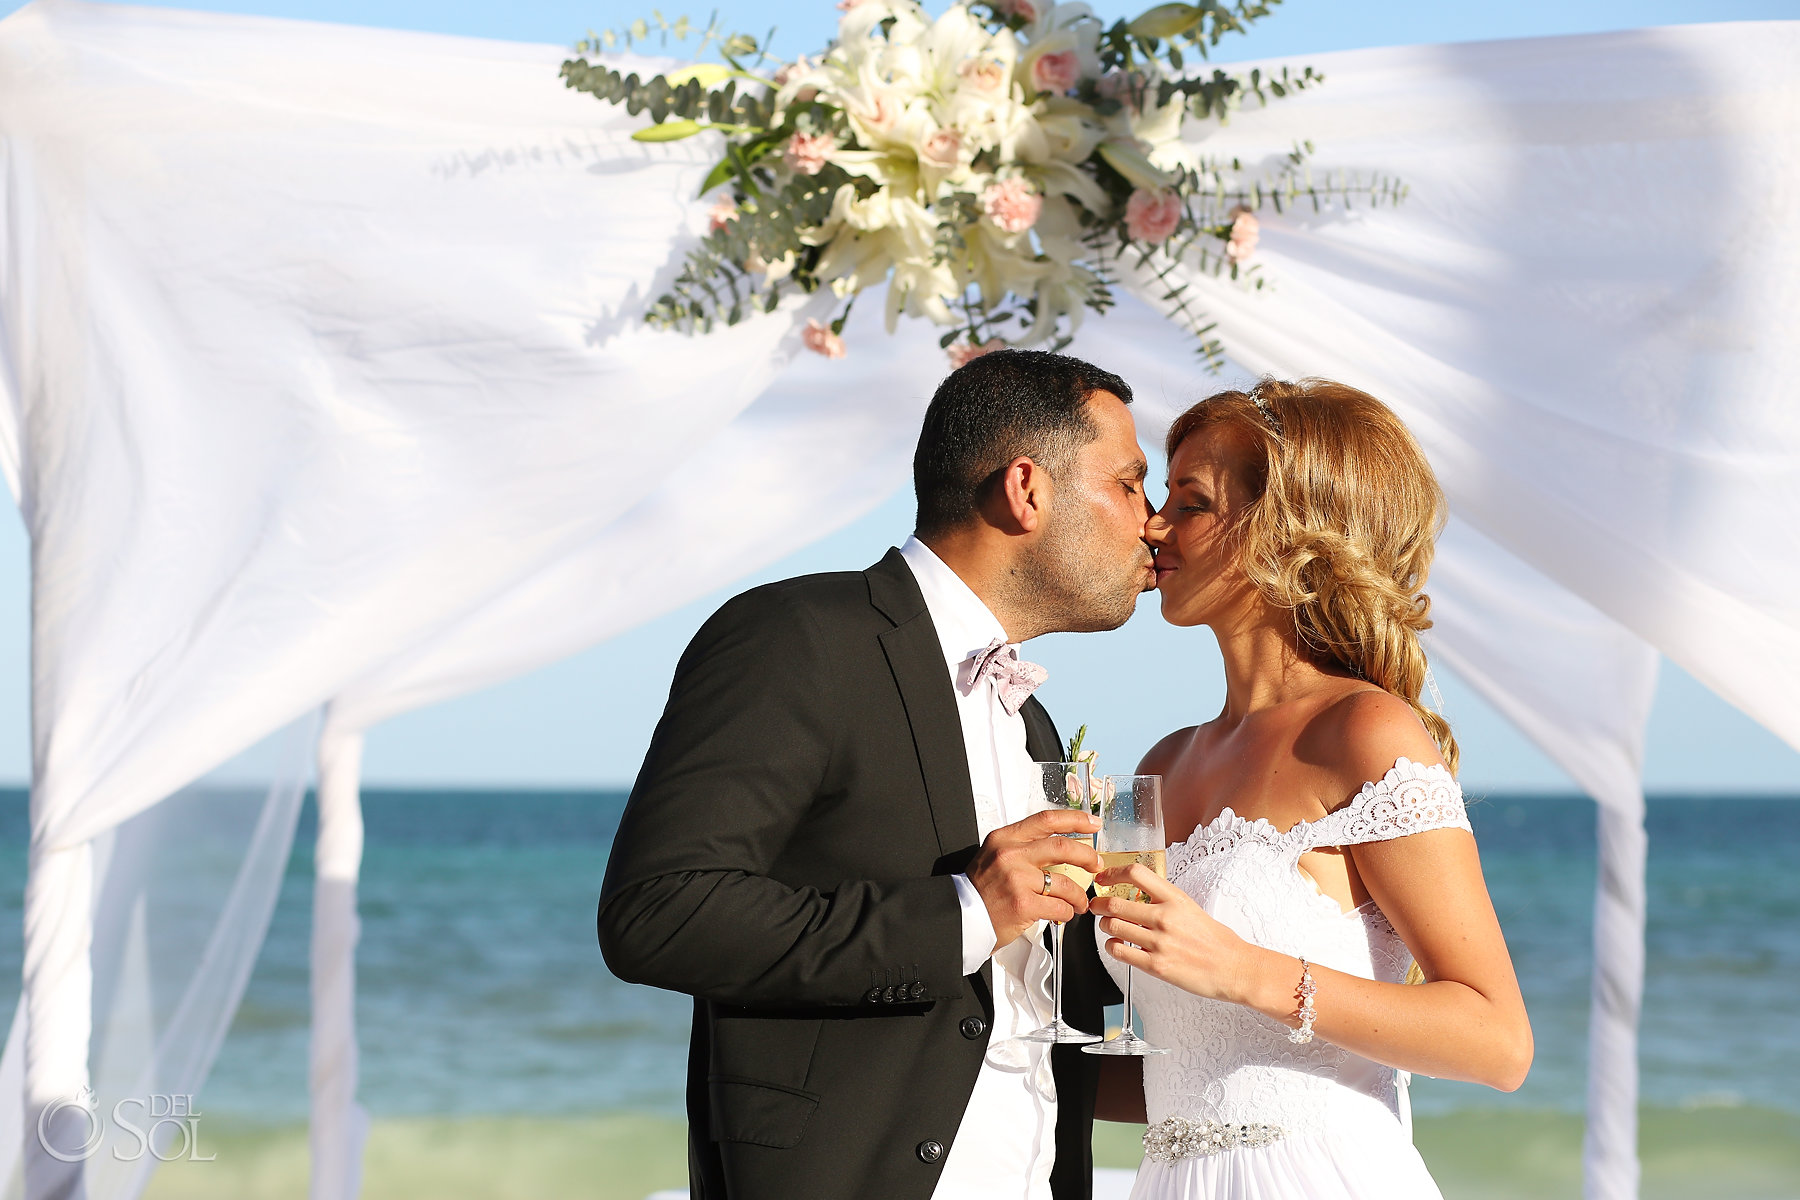 just married kiss with champagne Best Elopement Locations Mexico